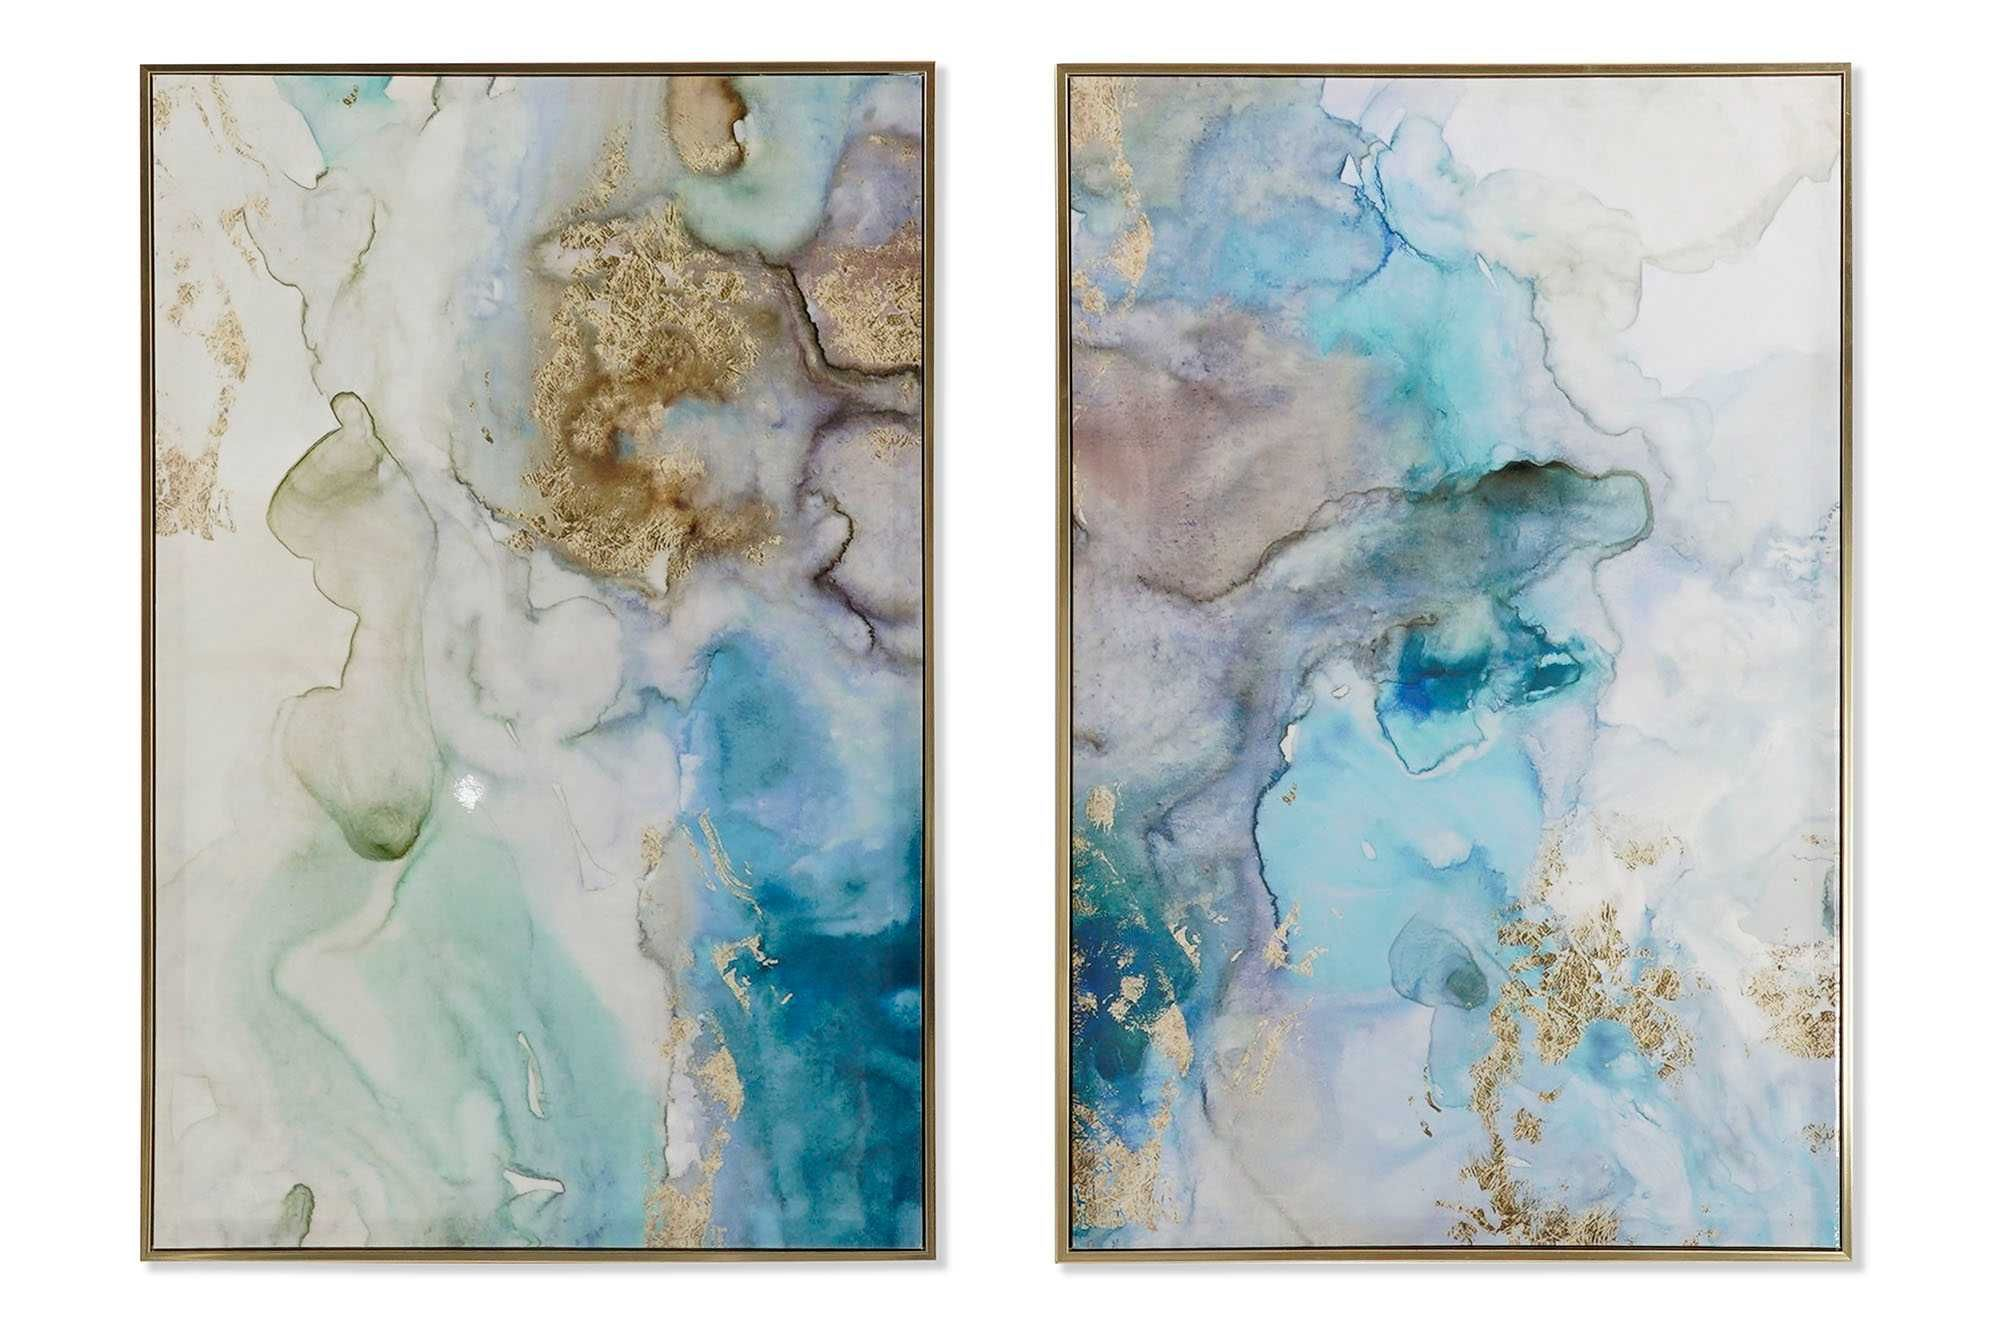 Quadro Abstracto Golds 4 modelos- 60X3X90cm By Arcoazul